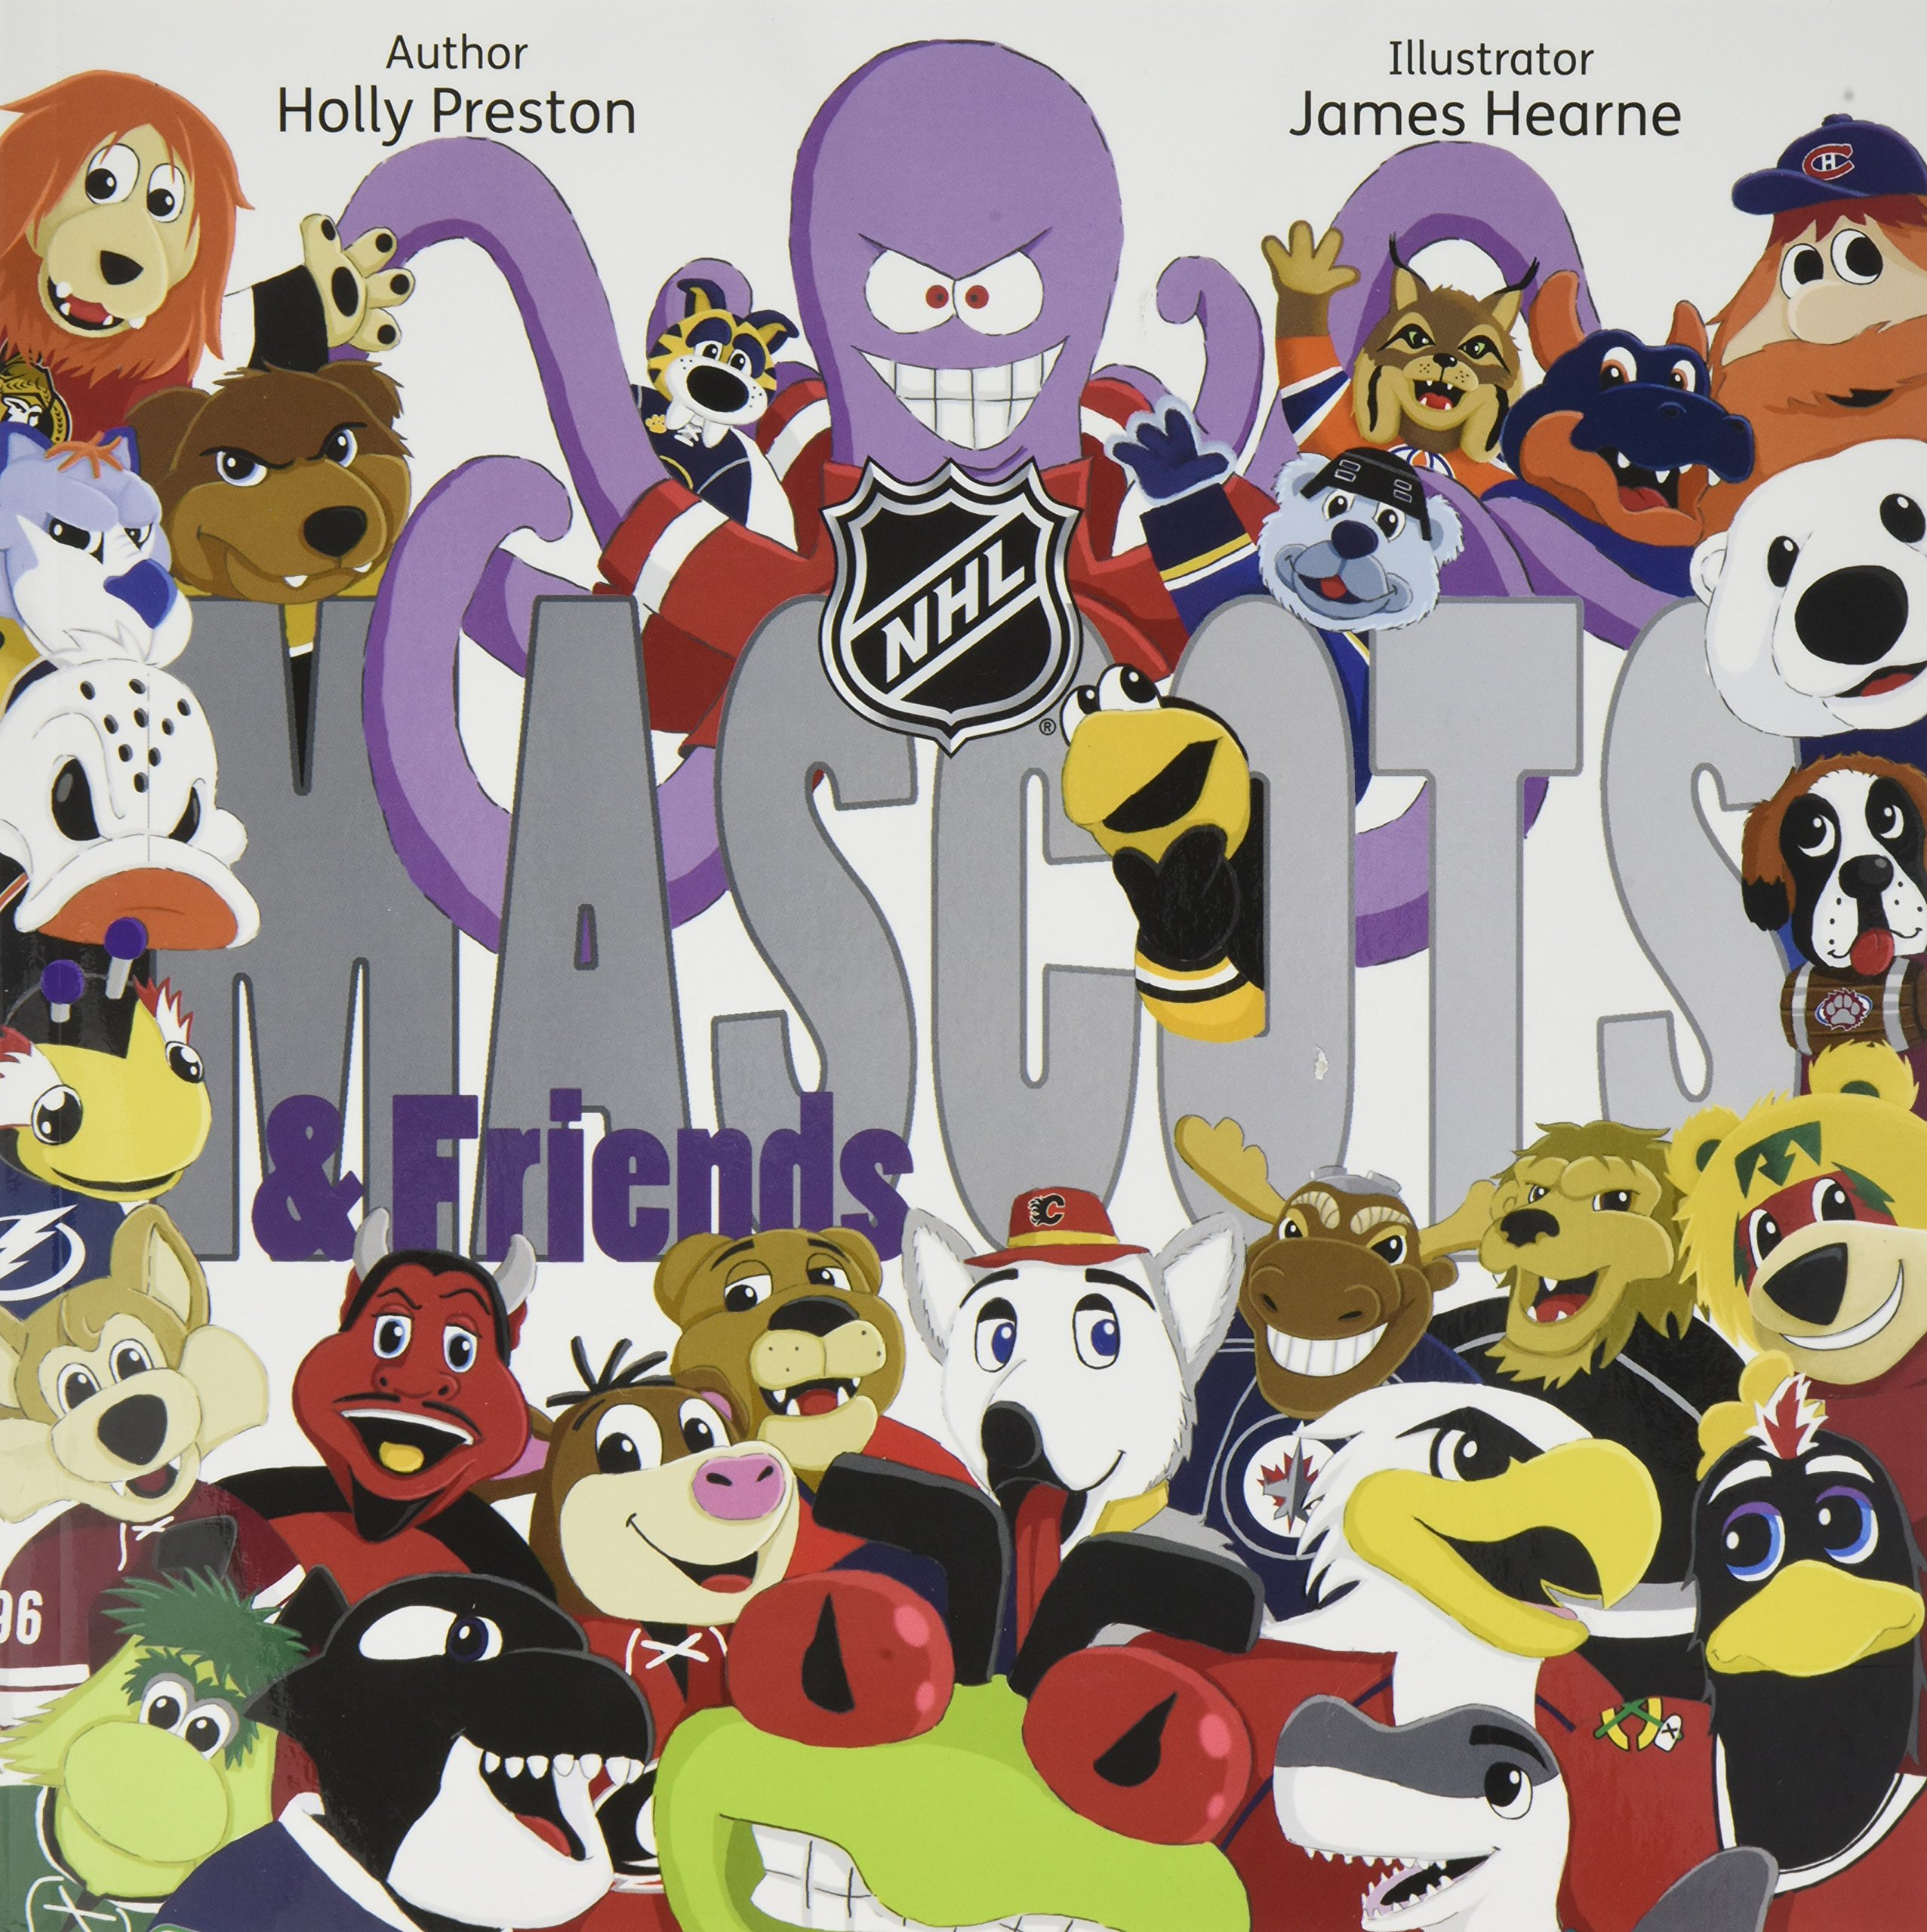 nhl mascots friends holly preston james hearne h preston 9780993897429 amazoncom books